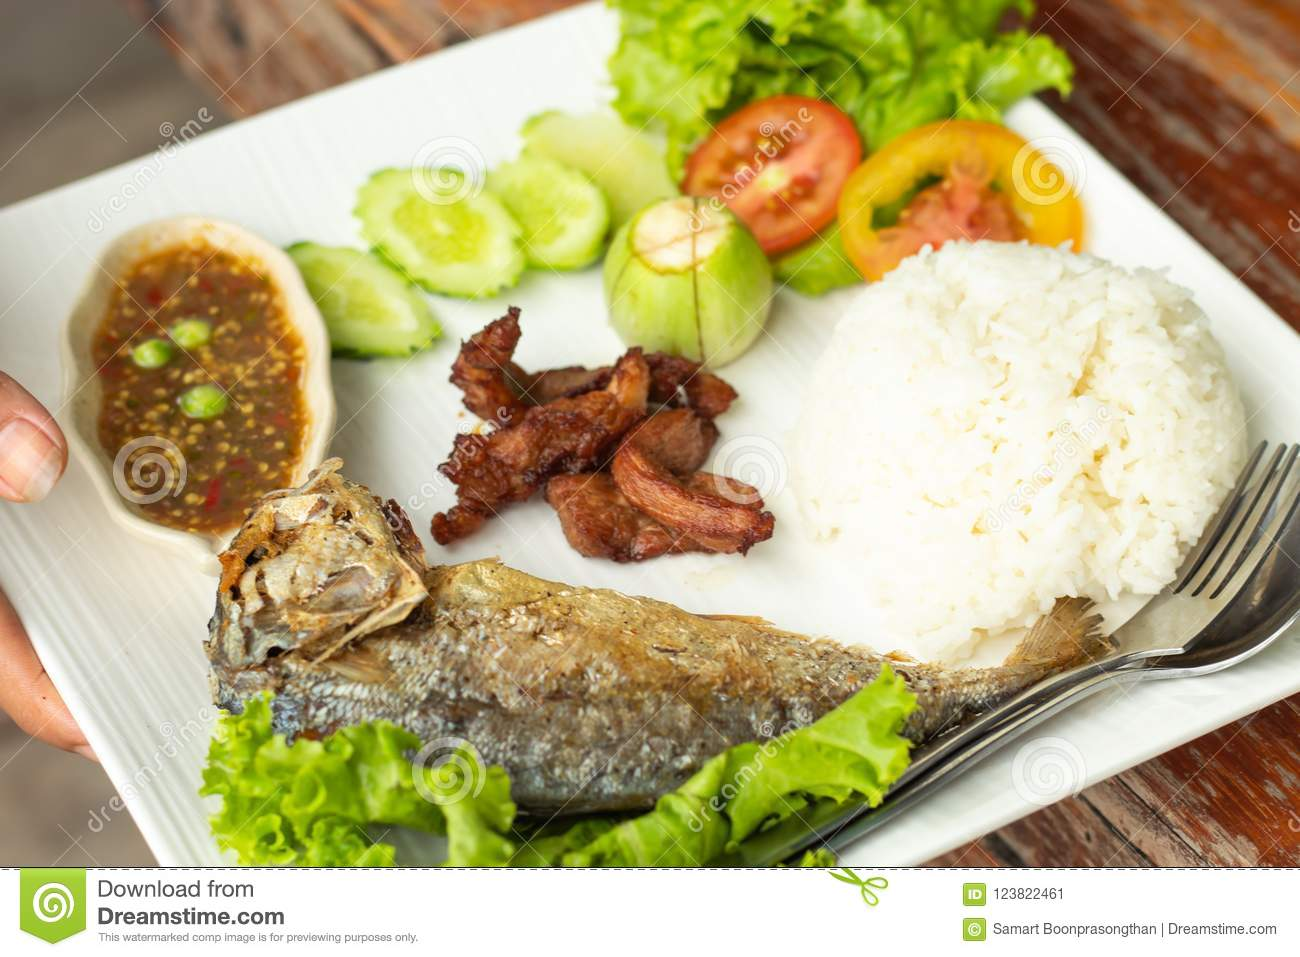 Rice, chili sauce, fish and pork fried with vegetables on a whit